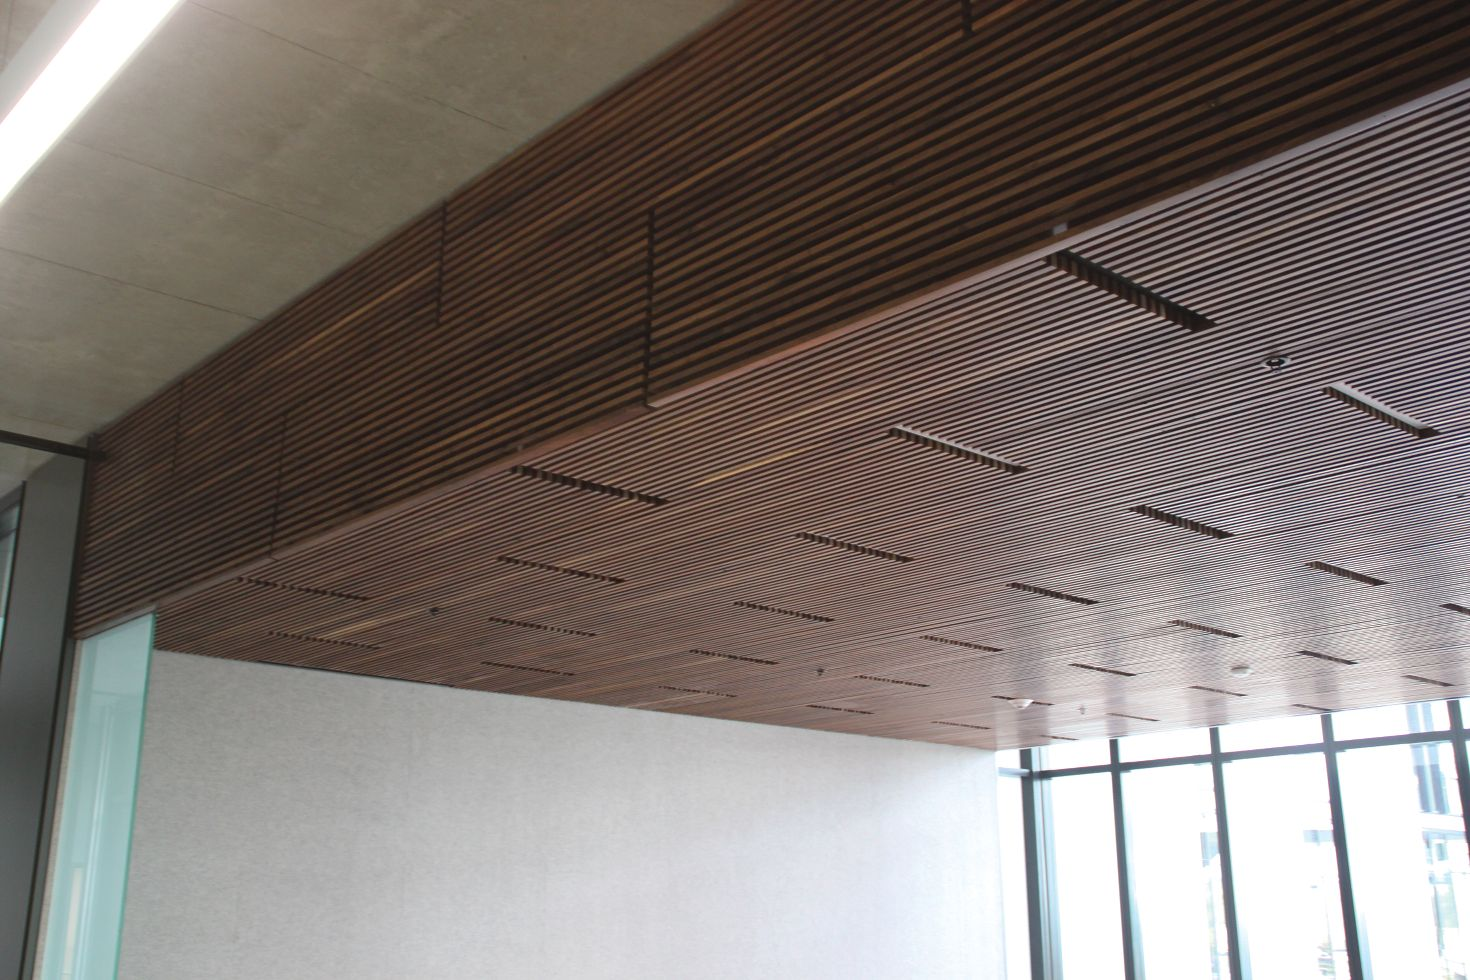 ACGI Grille ceiling & wall system